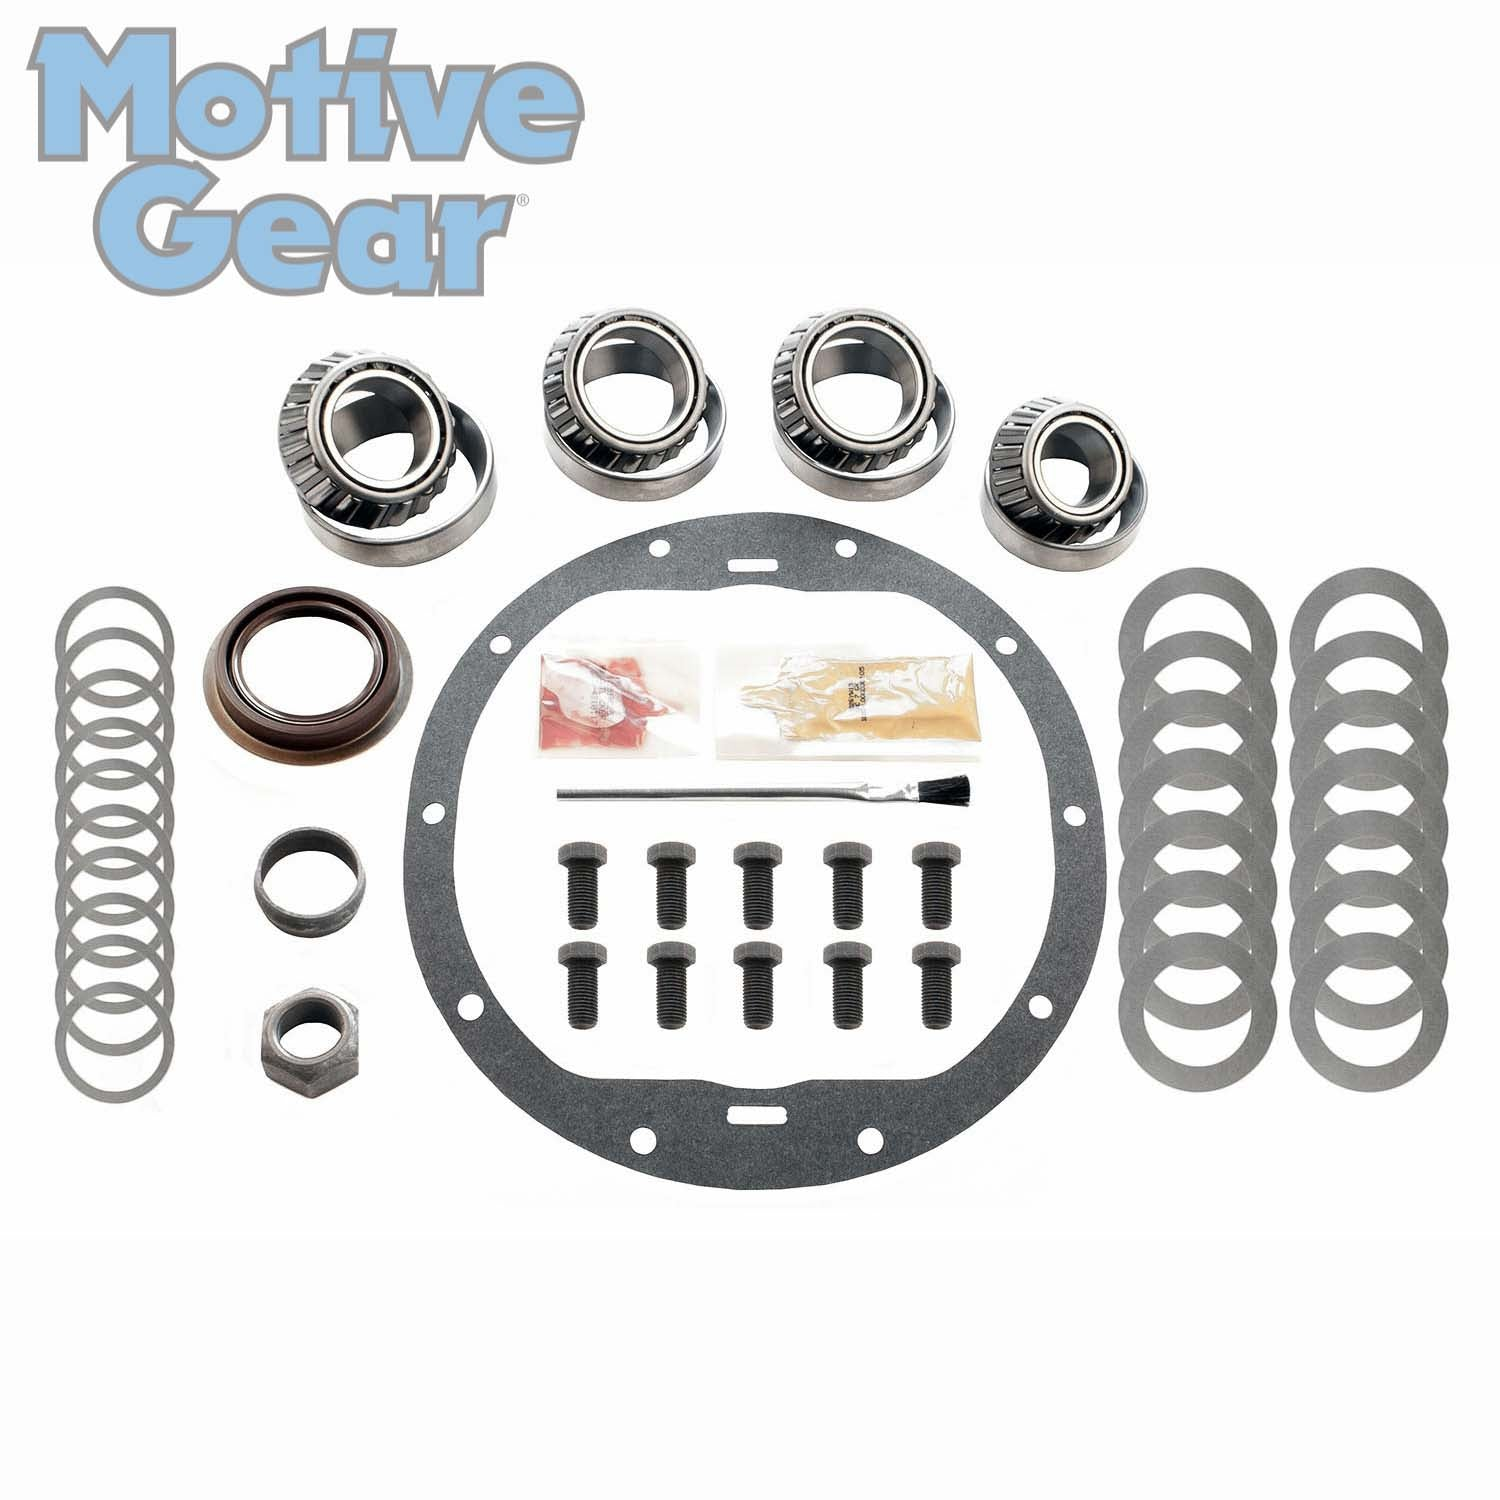 4.10 RING AND PINION /& INSTALLATION KIT 99-08 GM 8.6 10 BOLT